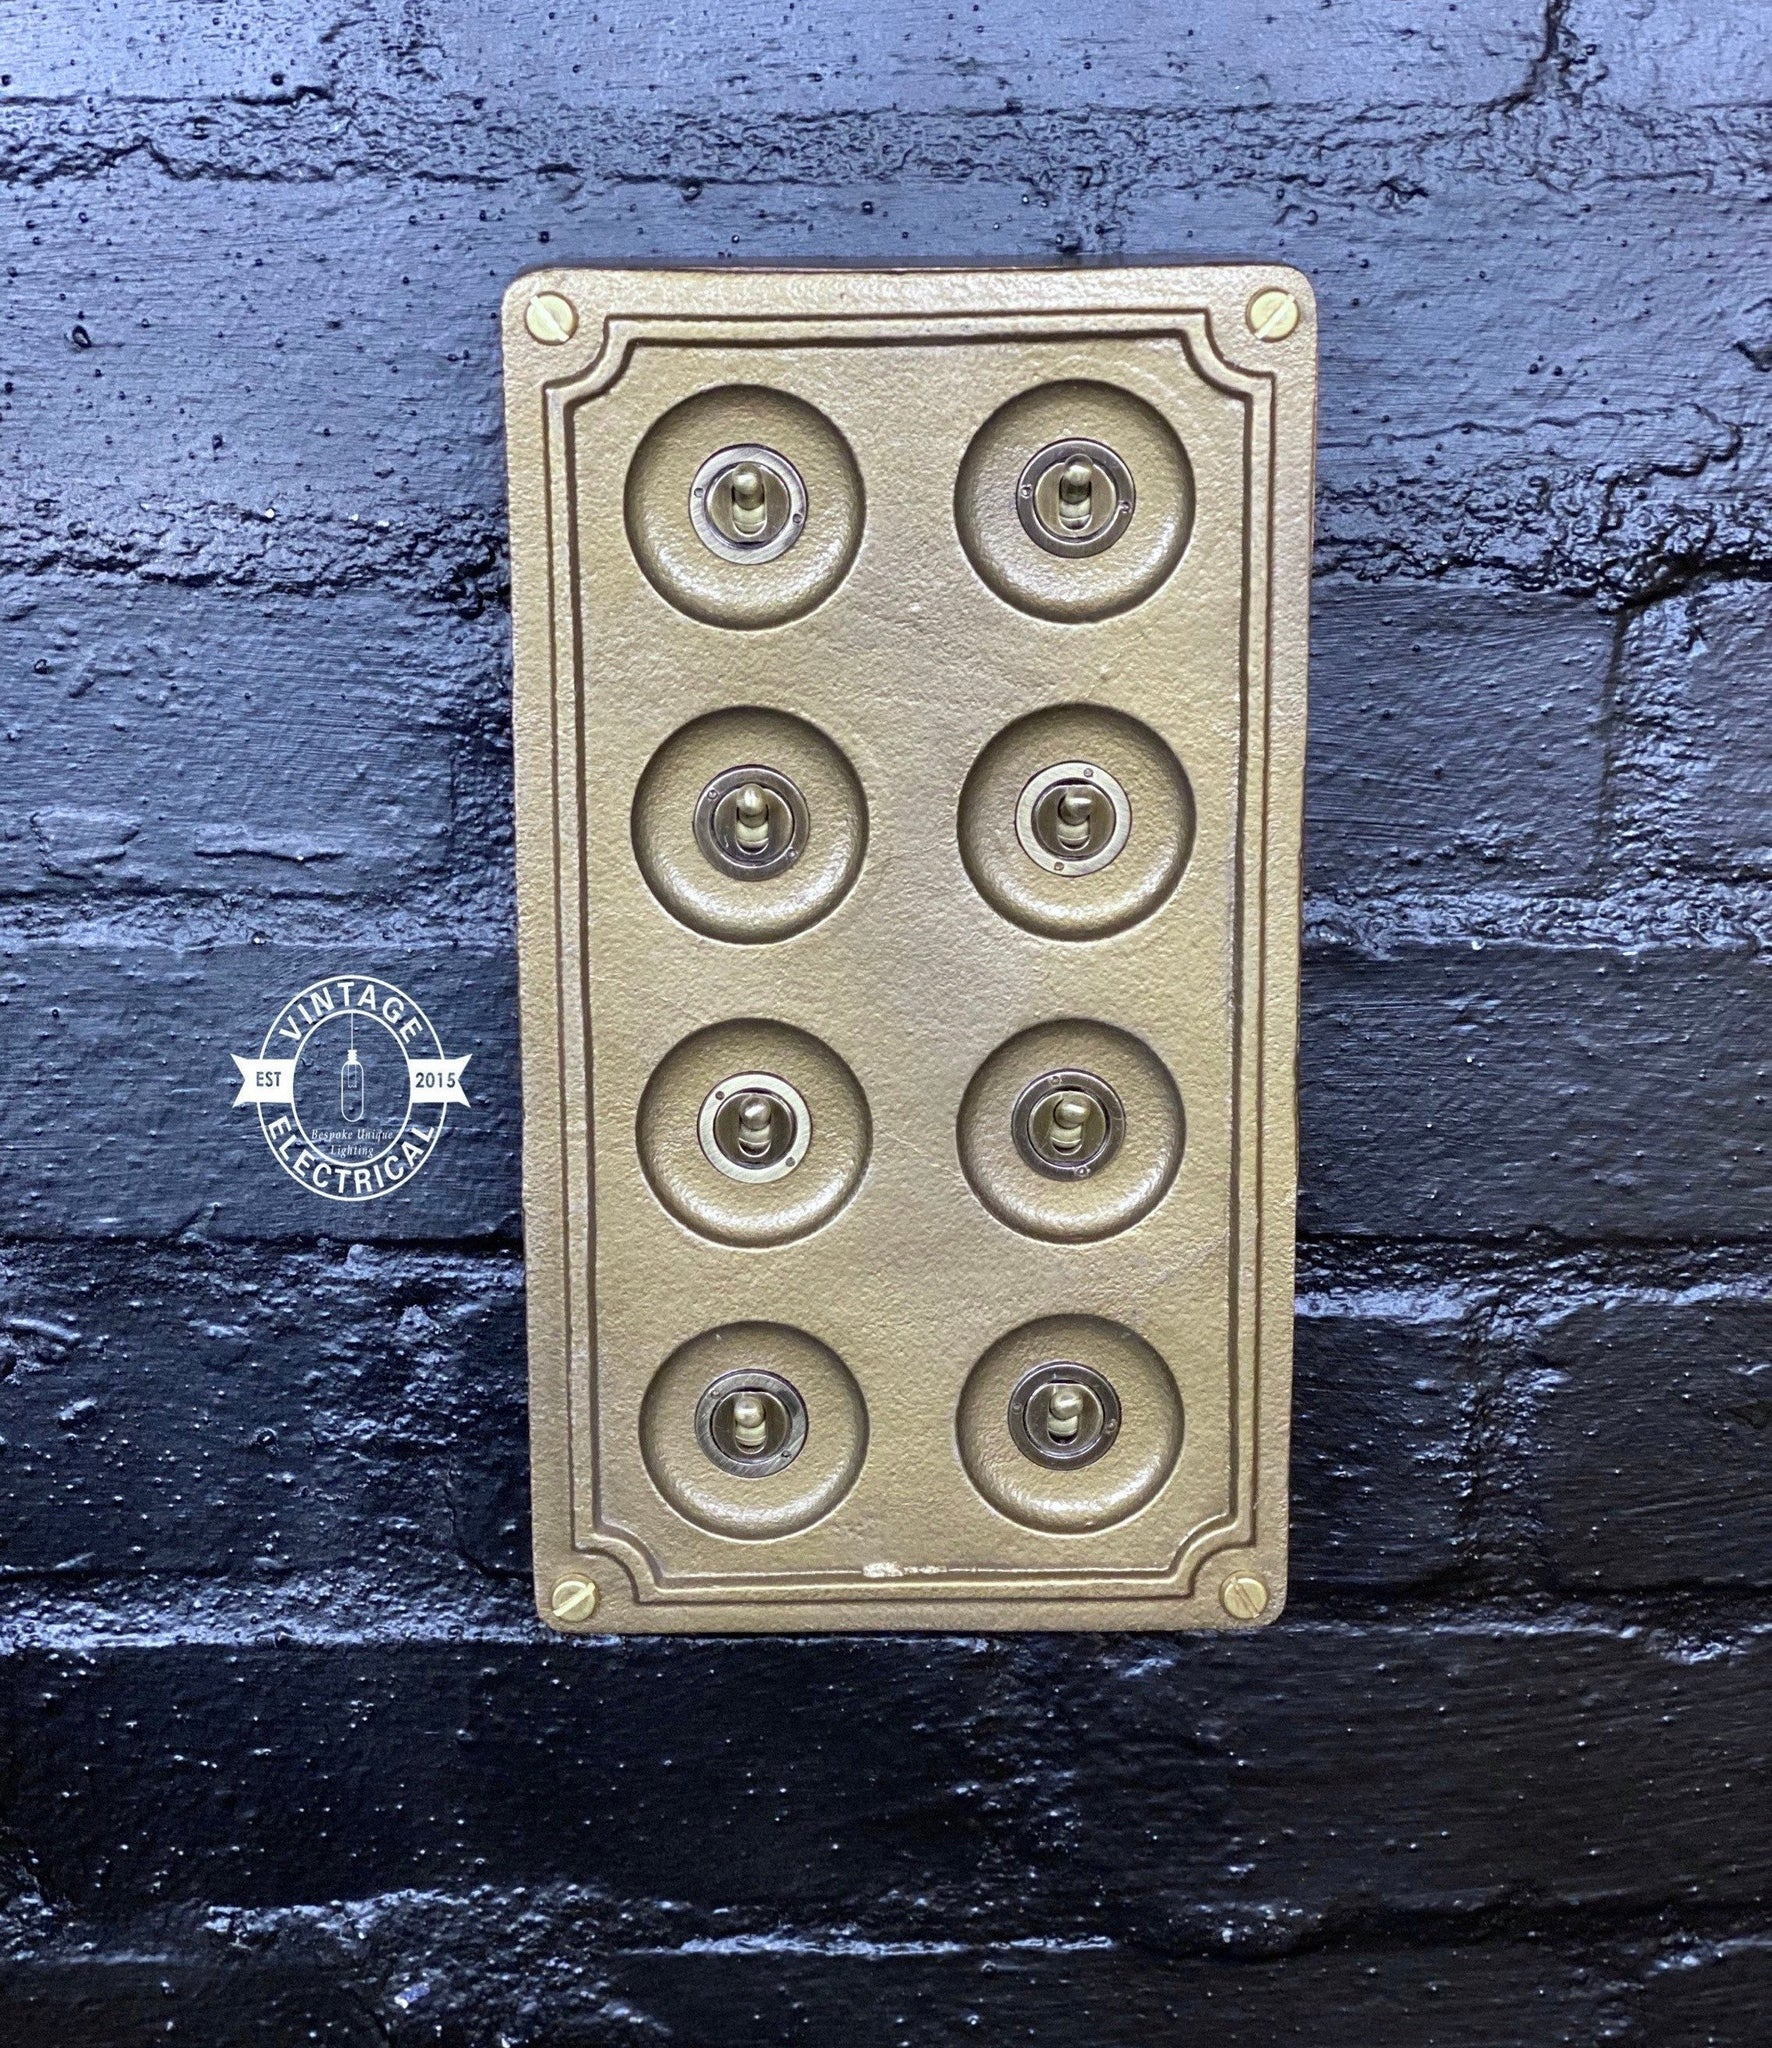 8 Gang 2 Way Bronze Solid Cast Metal Light Switch Industrial - BS EN Approved Vintage Crabtree 1950's Style